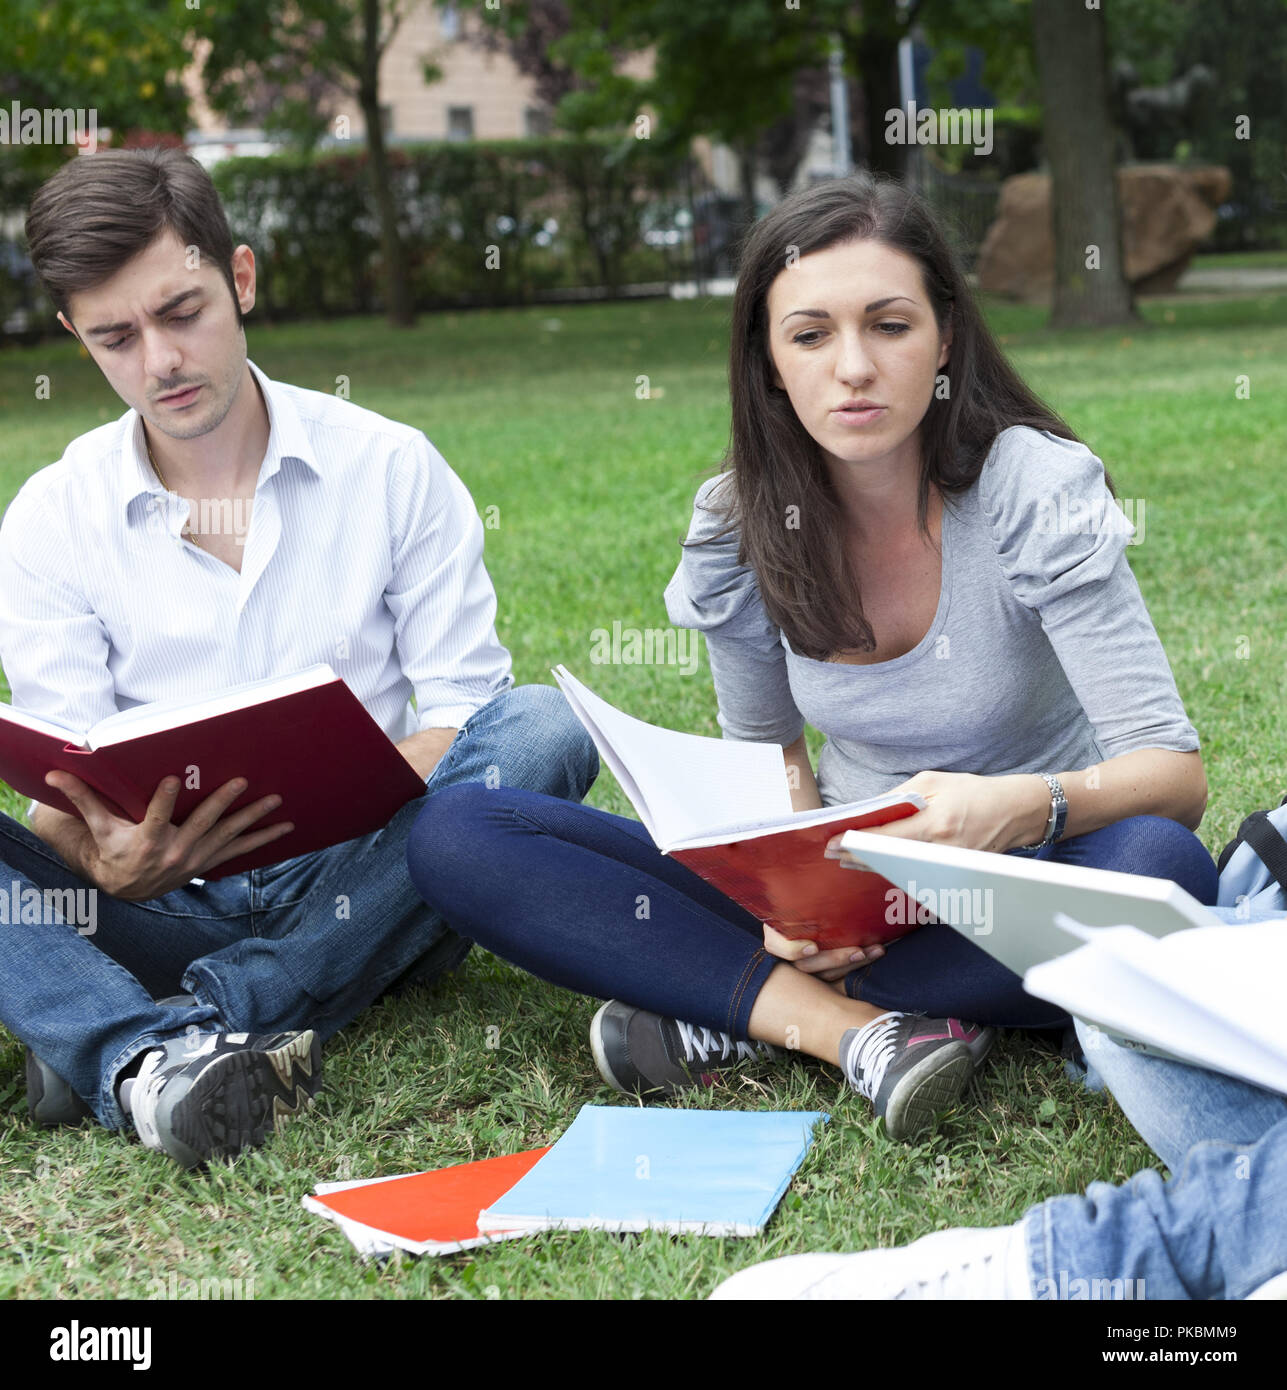 Group of friends studying together in a park - Stock Image